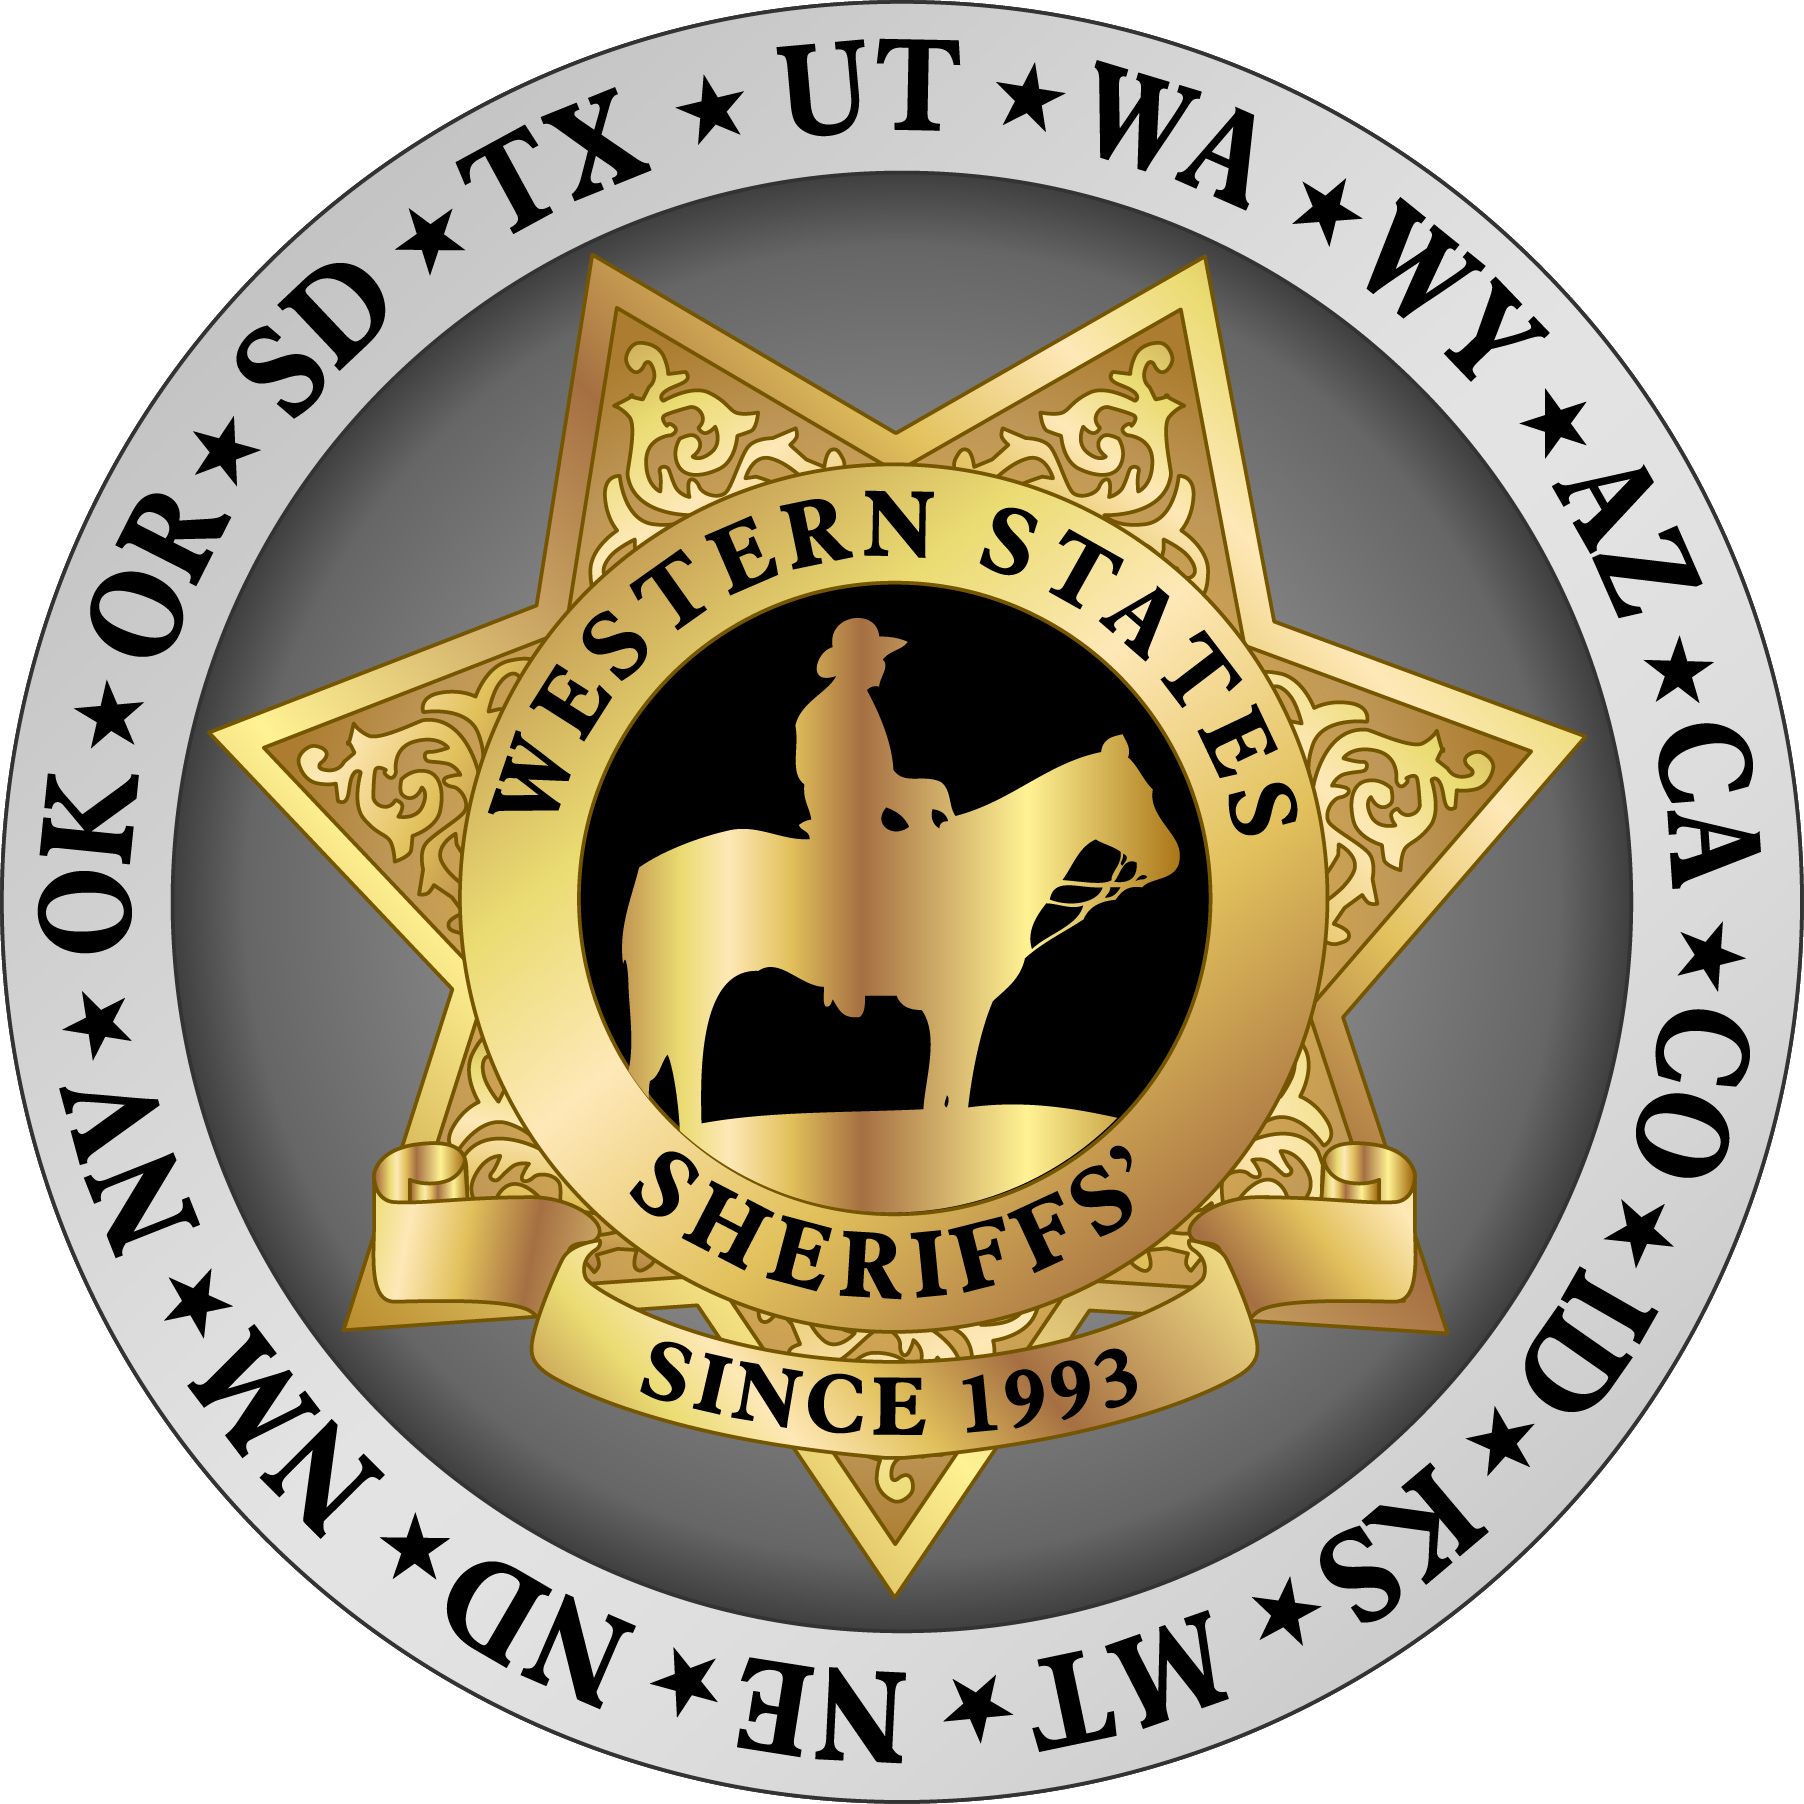 Western States Sheriffs' Association